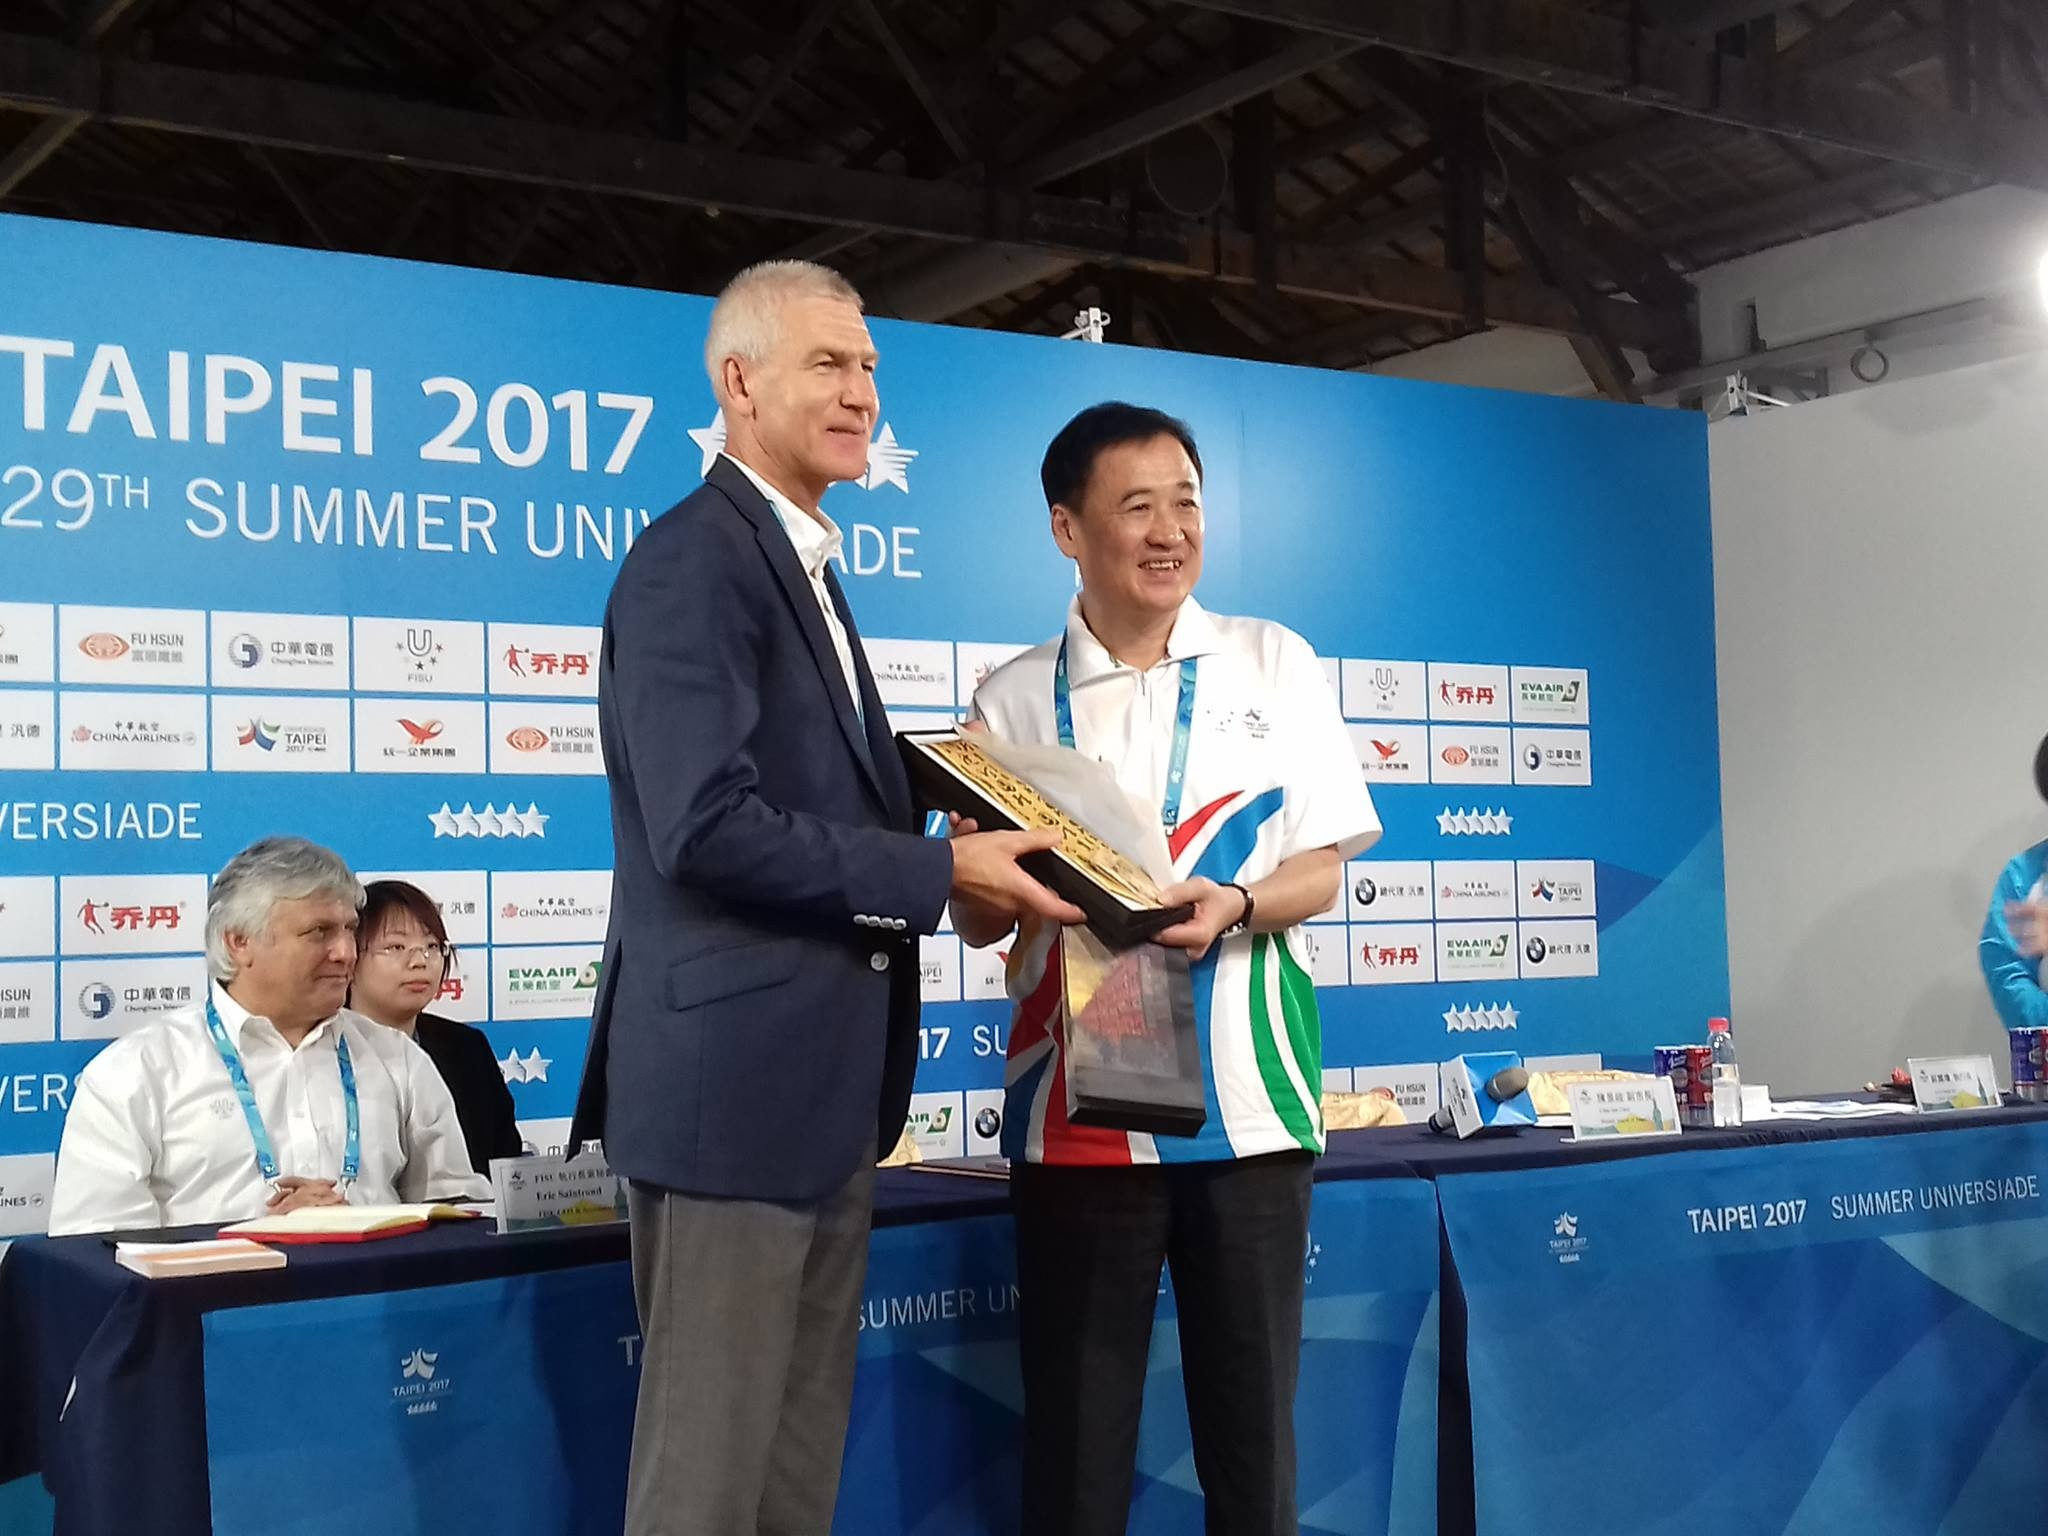 FISU President Oleg Matytsin, left, and Taipei Deputy Mayor Chen Chin-jun exchanged gifts to conclude the press conference ©ITG